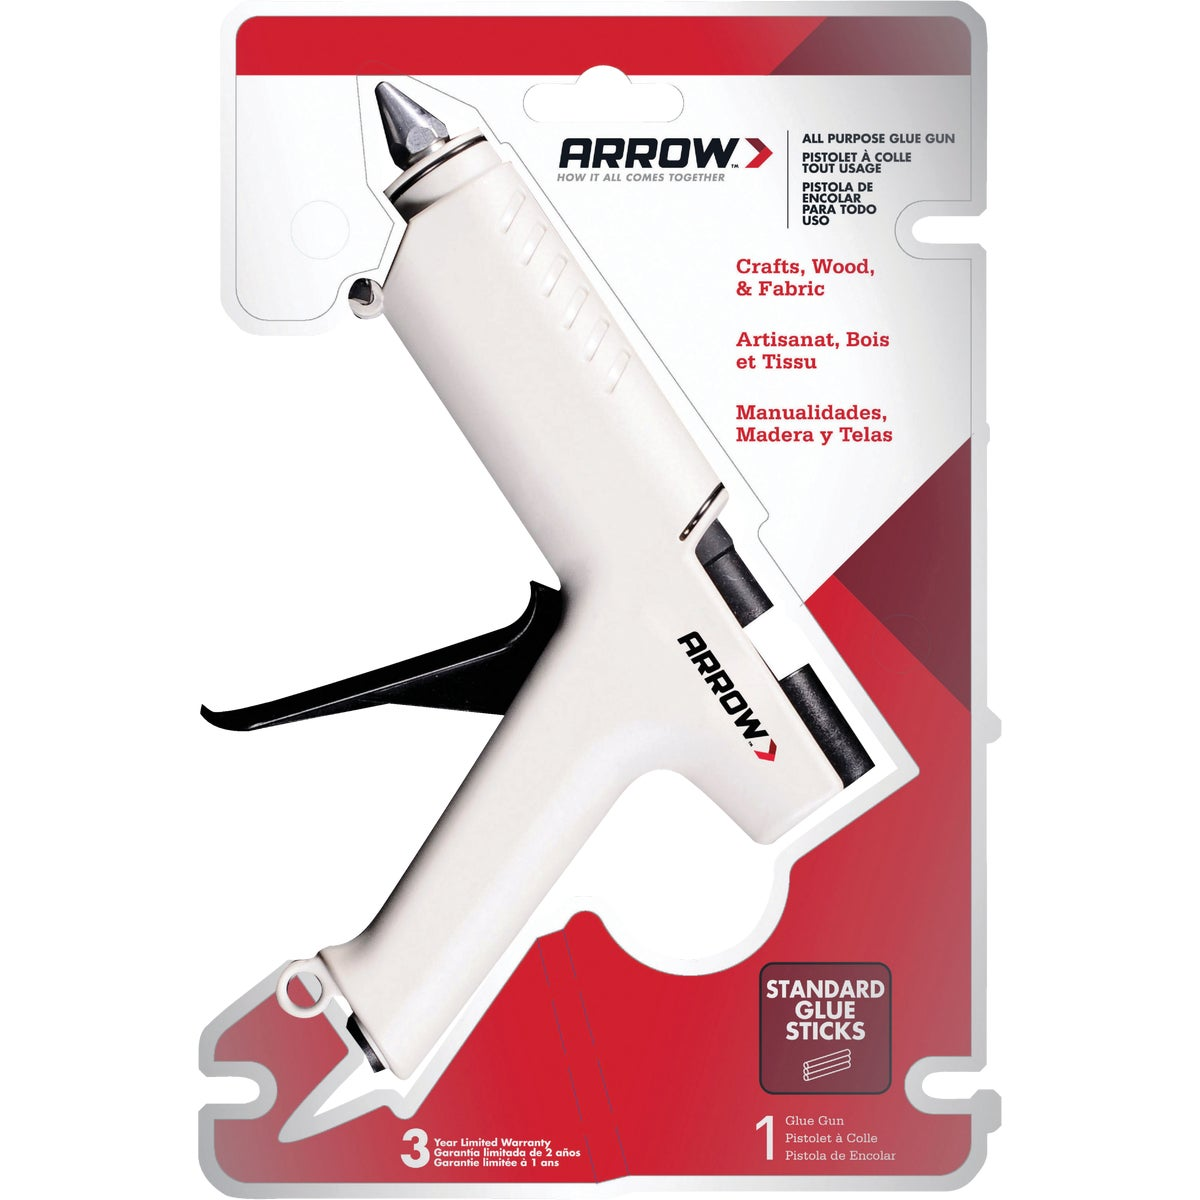 HEAVY DUTY PRO GLUE GUN - TR550 by Arrow Fastener Co